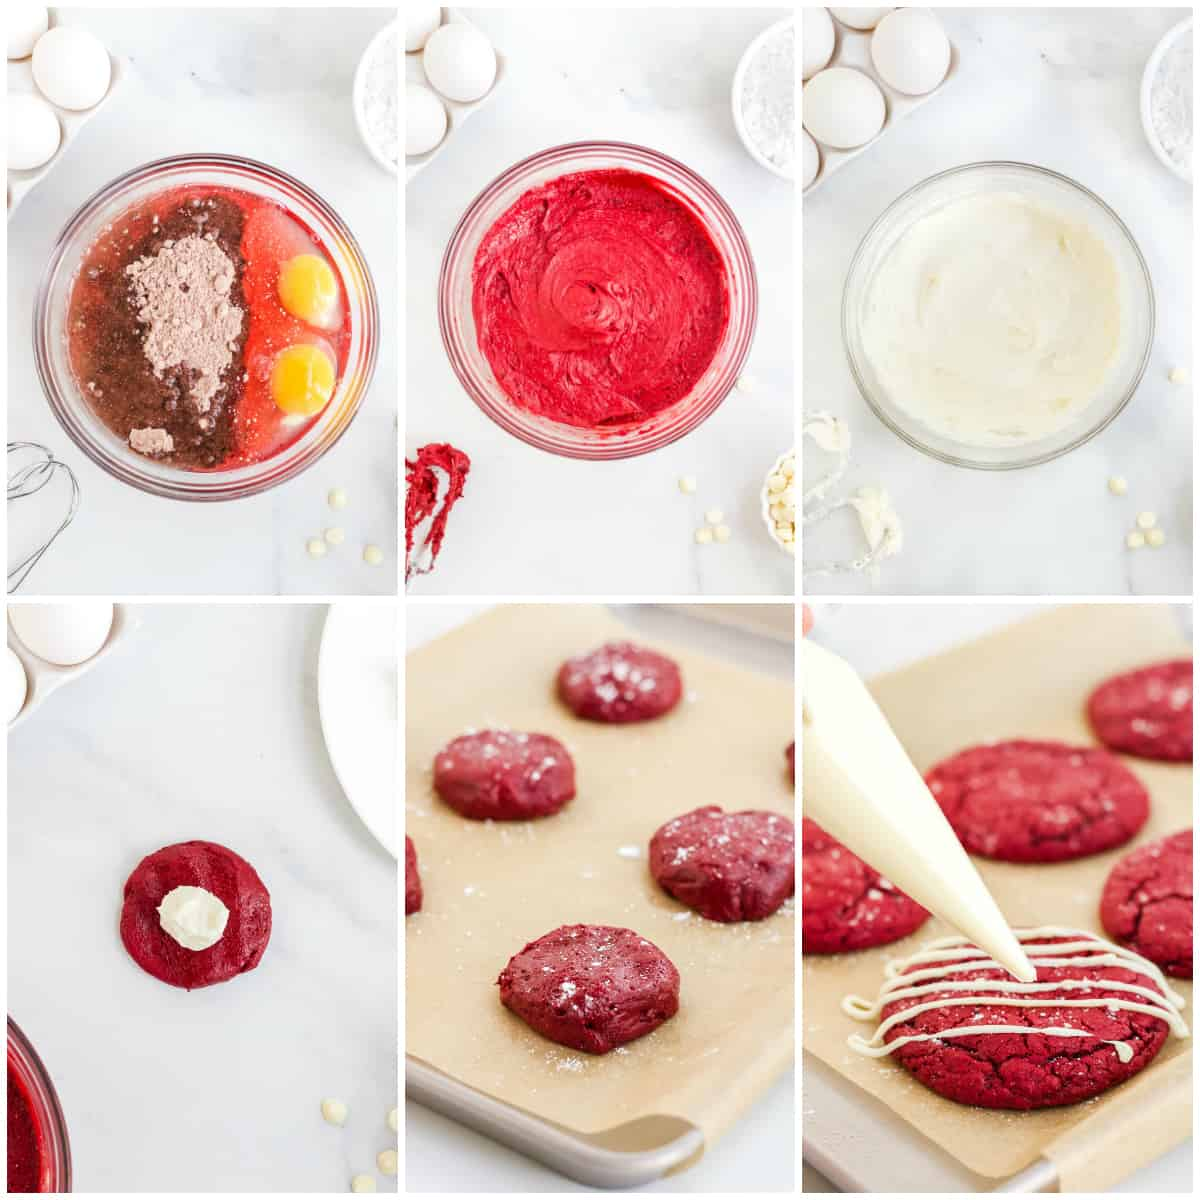 Step by step photos on how to make Red Velvet Cheesecake Cookies